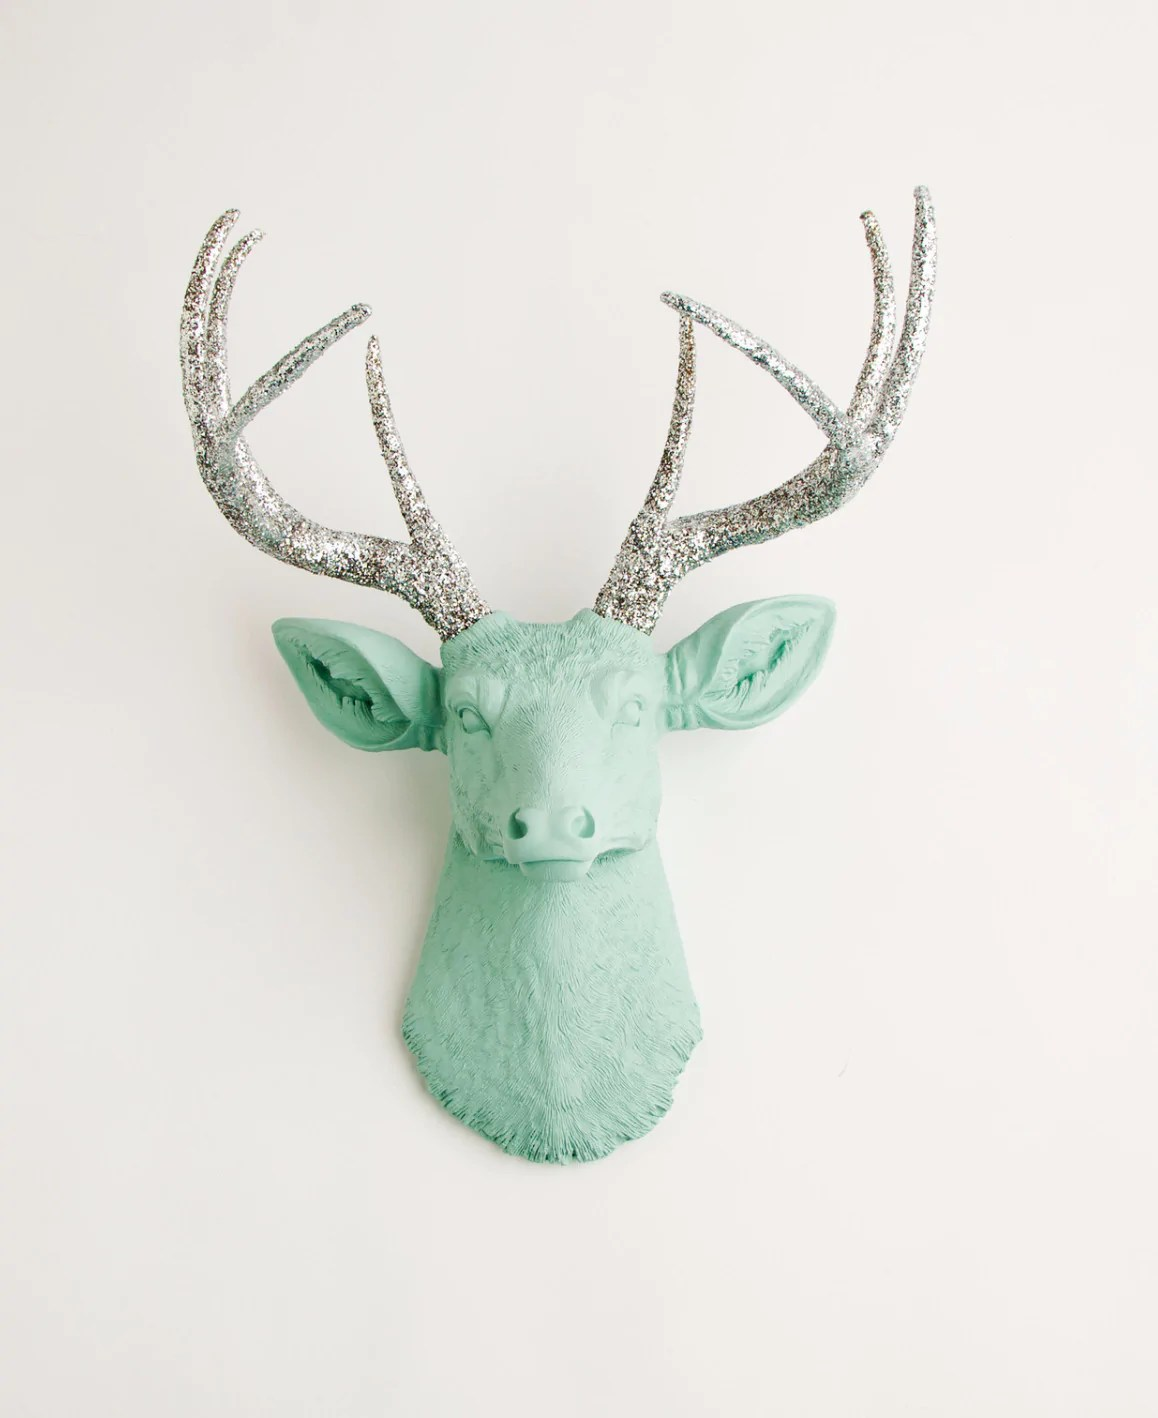 White Porcelain Deer Head Seafoam Green Faux Deer Head Wall Mount W Silver Glitter